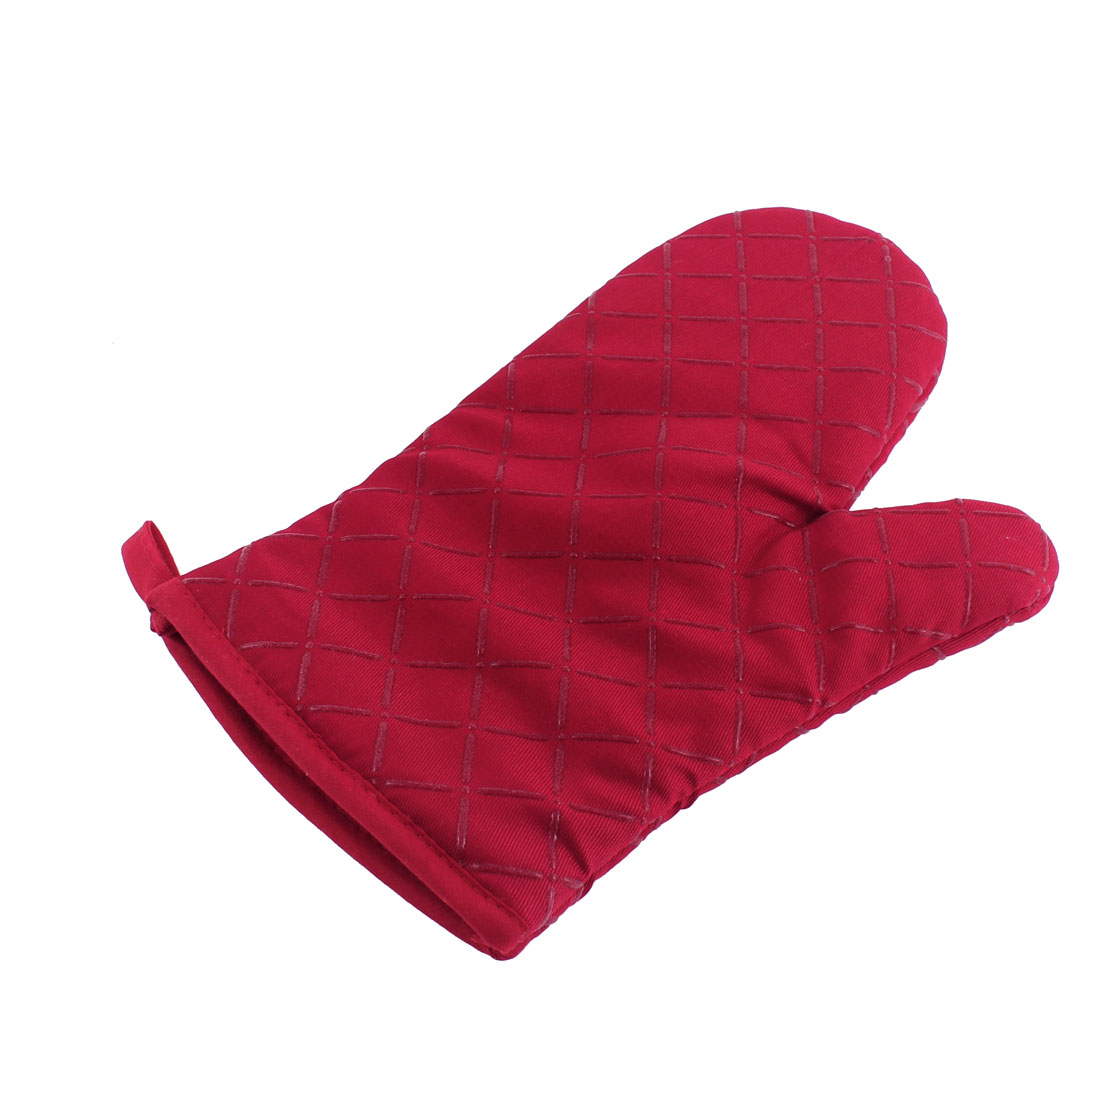 Home Kitchen Cross Pattern Non Slip Heat Resistance Mitt Glove Red